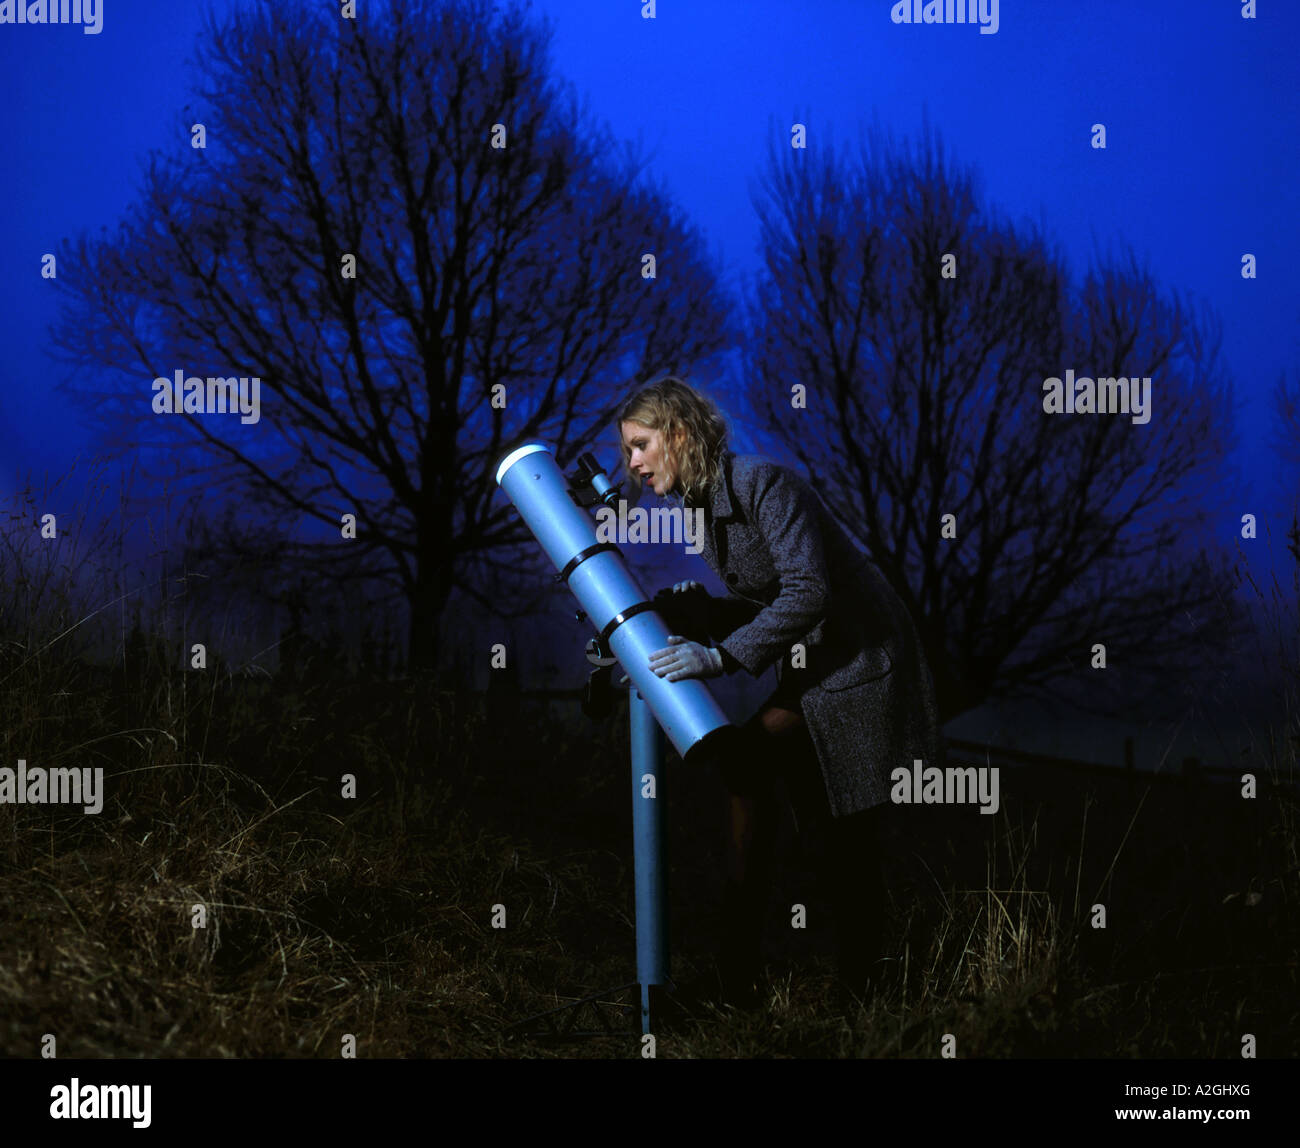 1212826 outdoor park tree trees evening night autumn young woman 25 30 blonde hair curly coat stand telescope look - Stock Image